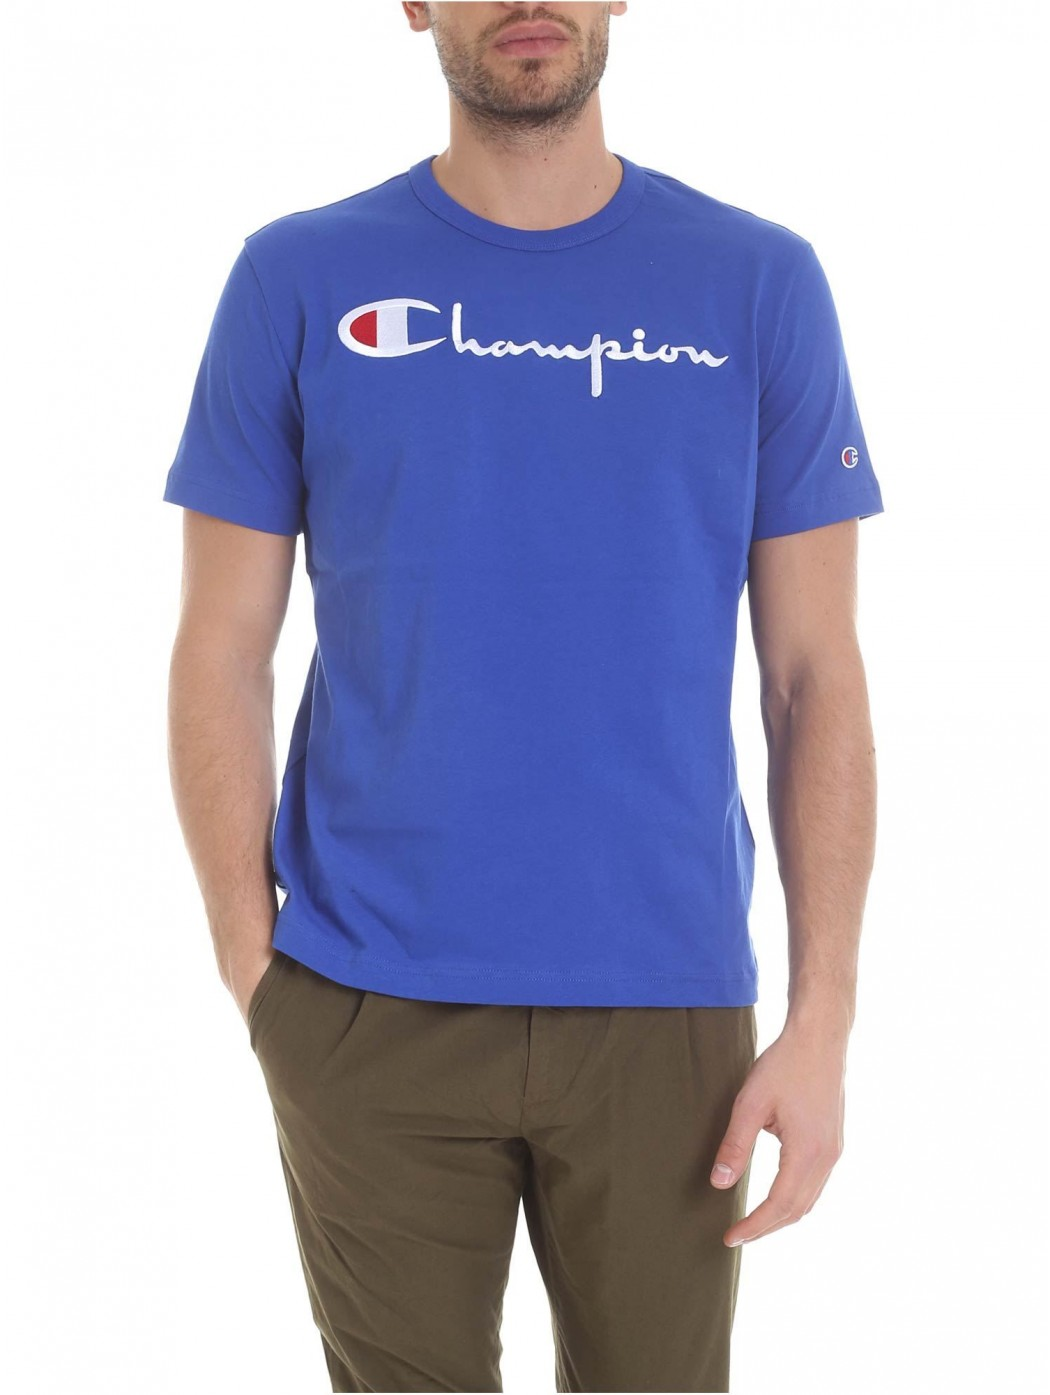 CHAMPION 210972 BAI T-SHIRT